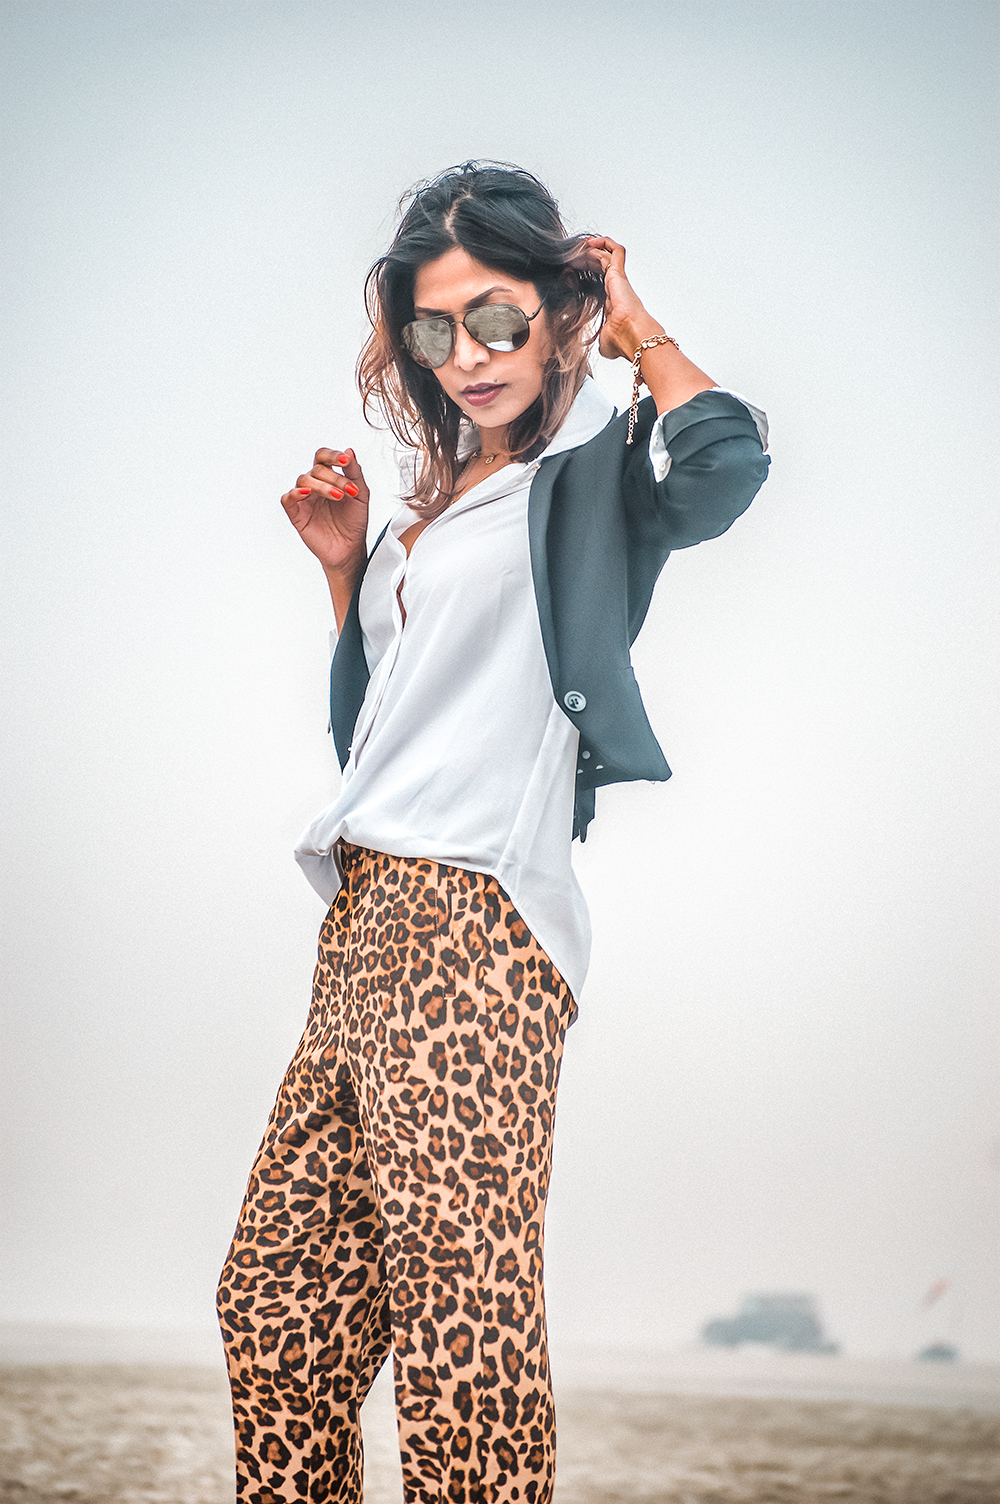 Leopard Print to Work, Leopard Print, Work wear, Office wear, Formal Fashion, How to style, Style Tips-2